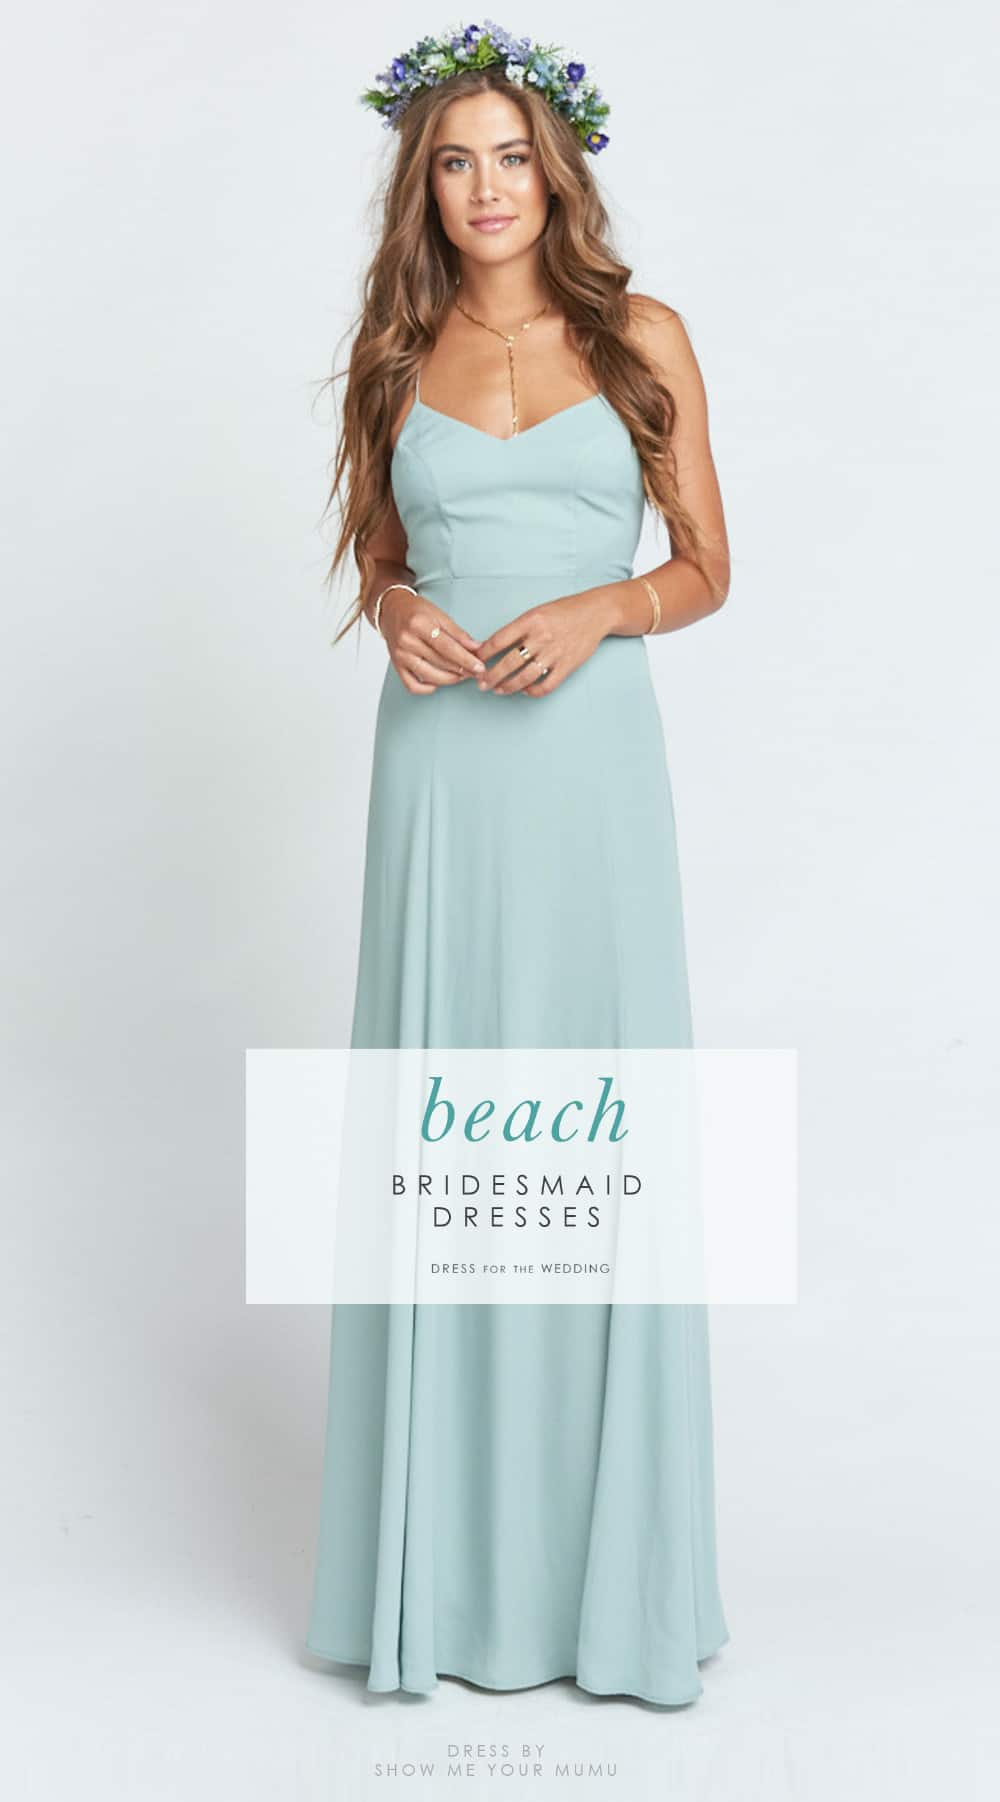 Beach Bridesmaid Dresses | Dress for the Wedding